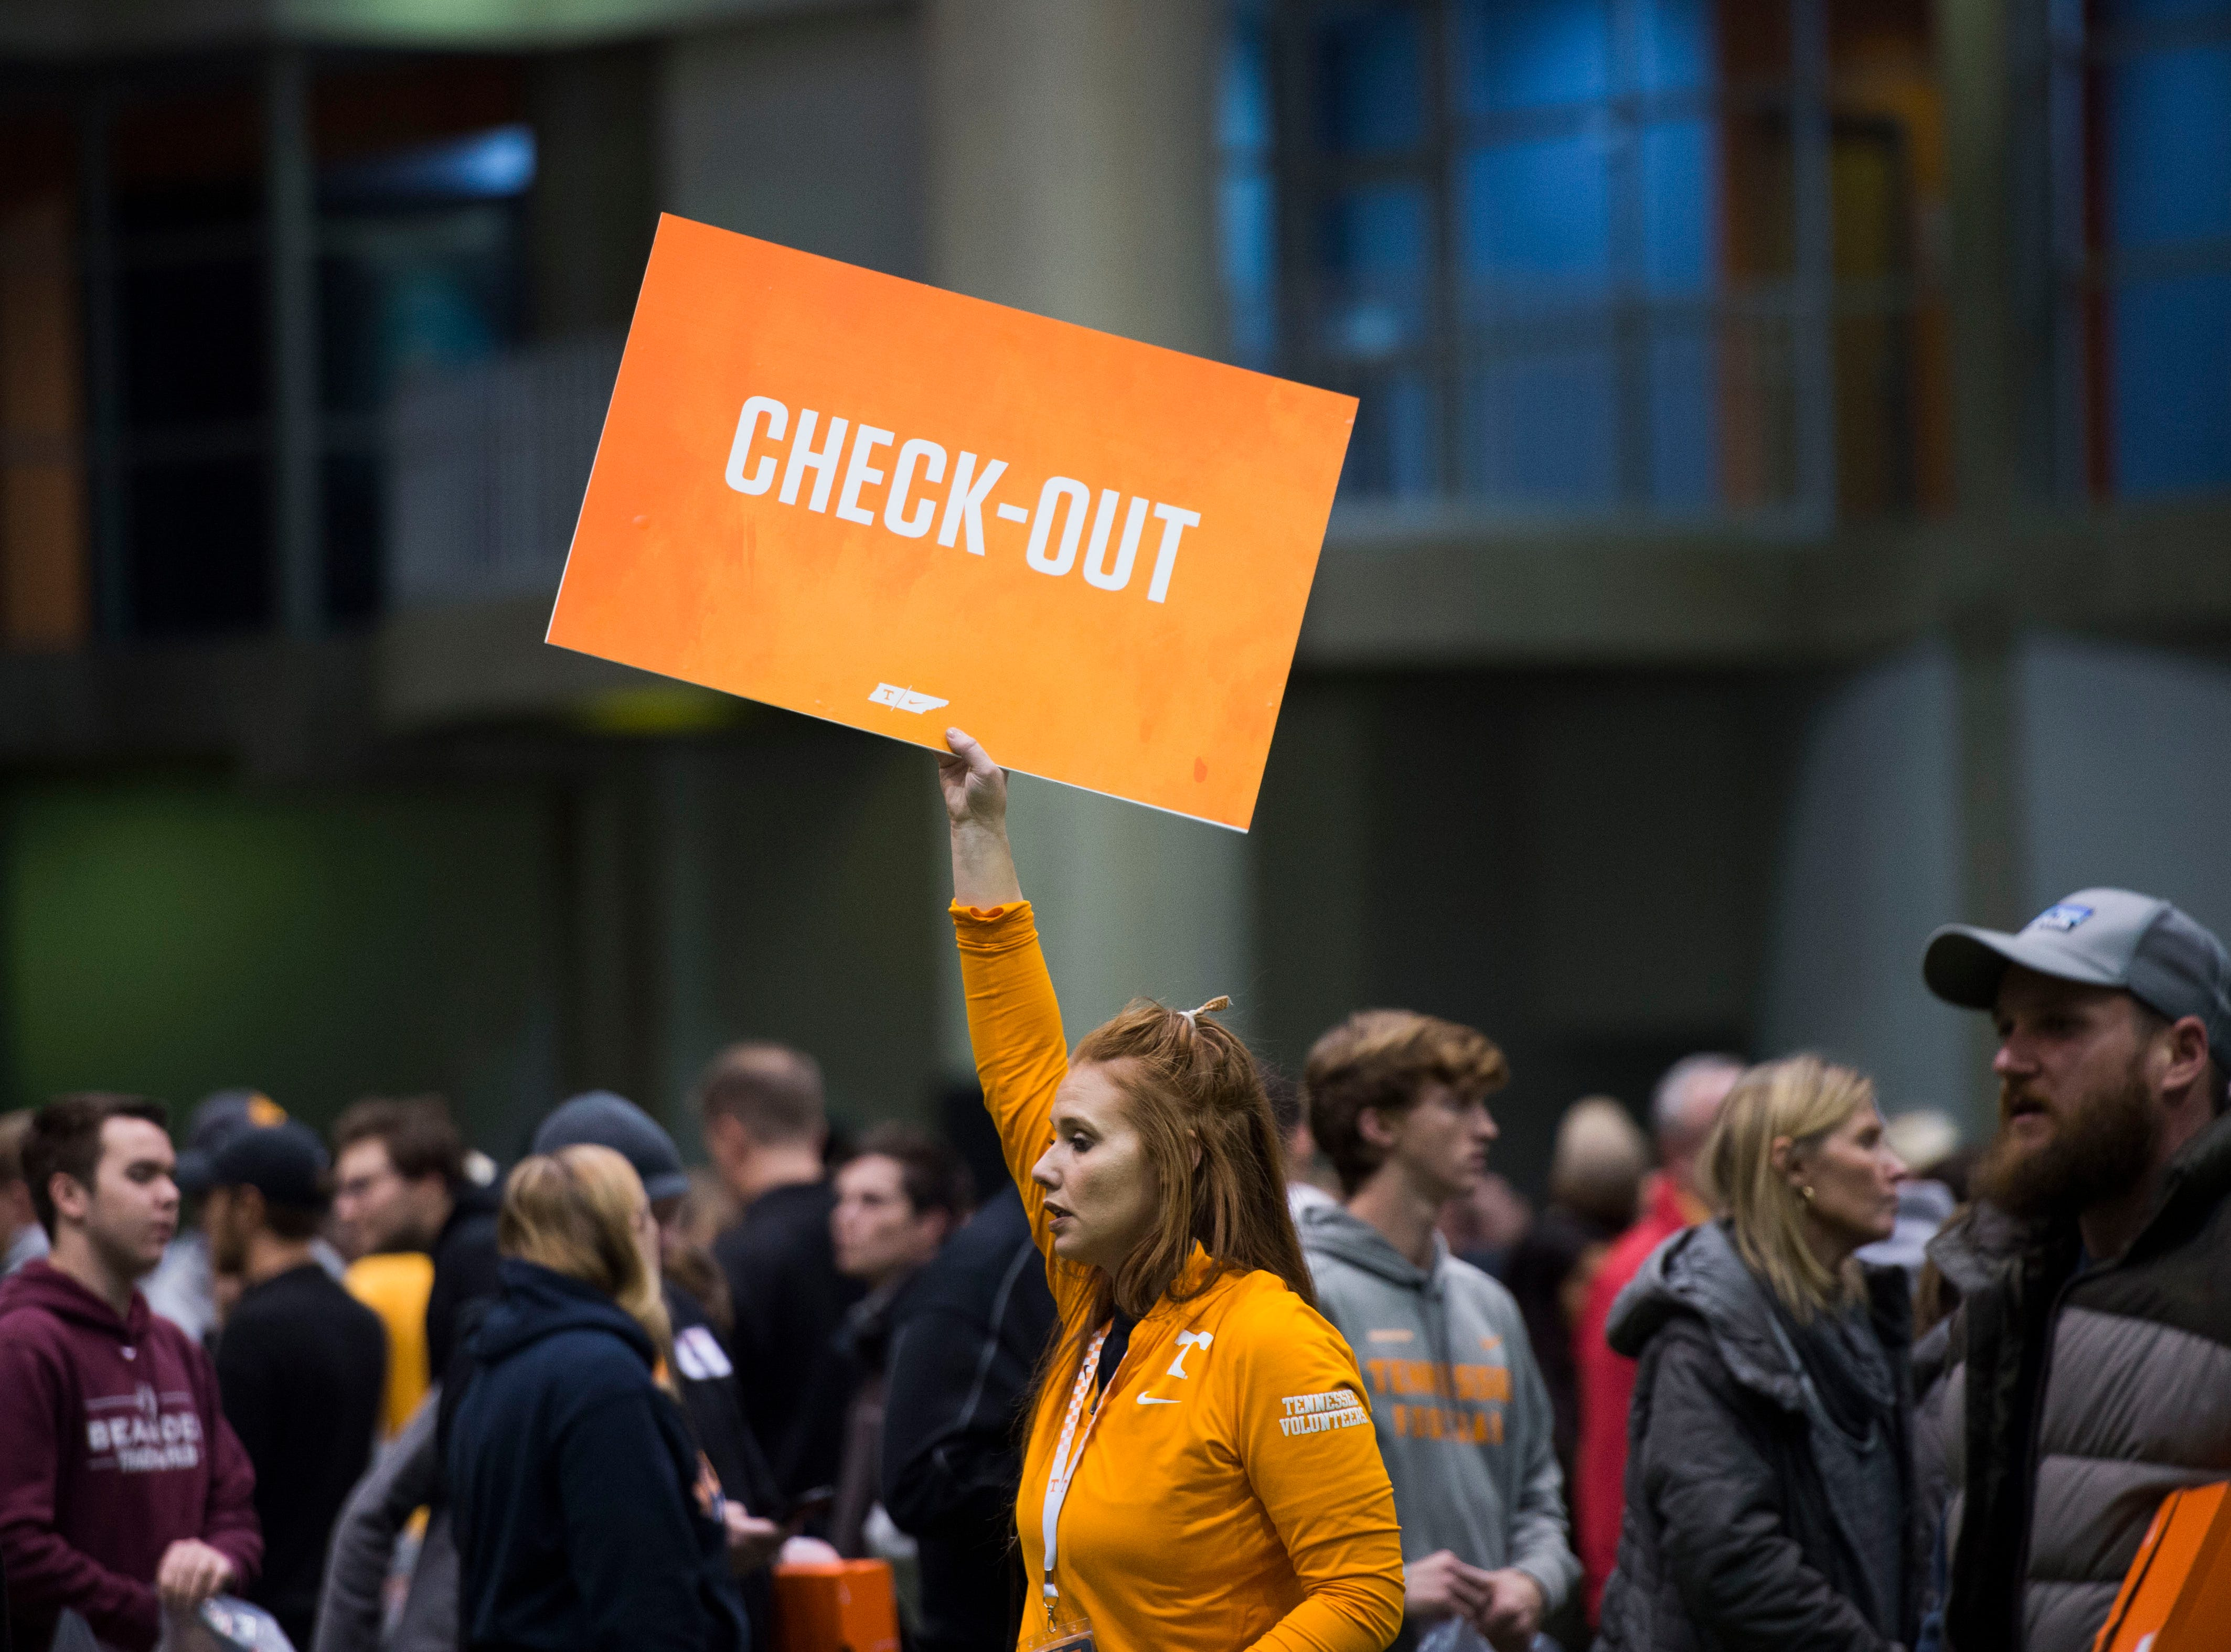 An assistant holds a line marking the check-out area as people shop for athletic apparel on Tennessee football's indoor practice field during University of Tennessee Athletic Department's inventory sale Wednesday, Dec. 12, 2018. Helmets and jerseys were sold along side the discount gear for hundreds of dollars.